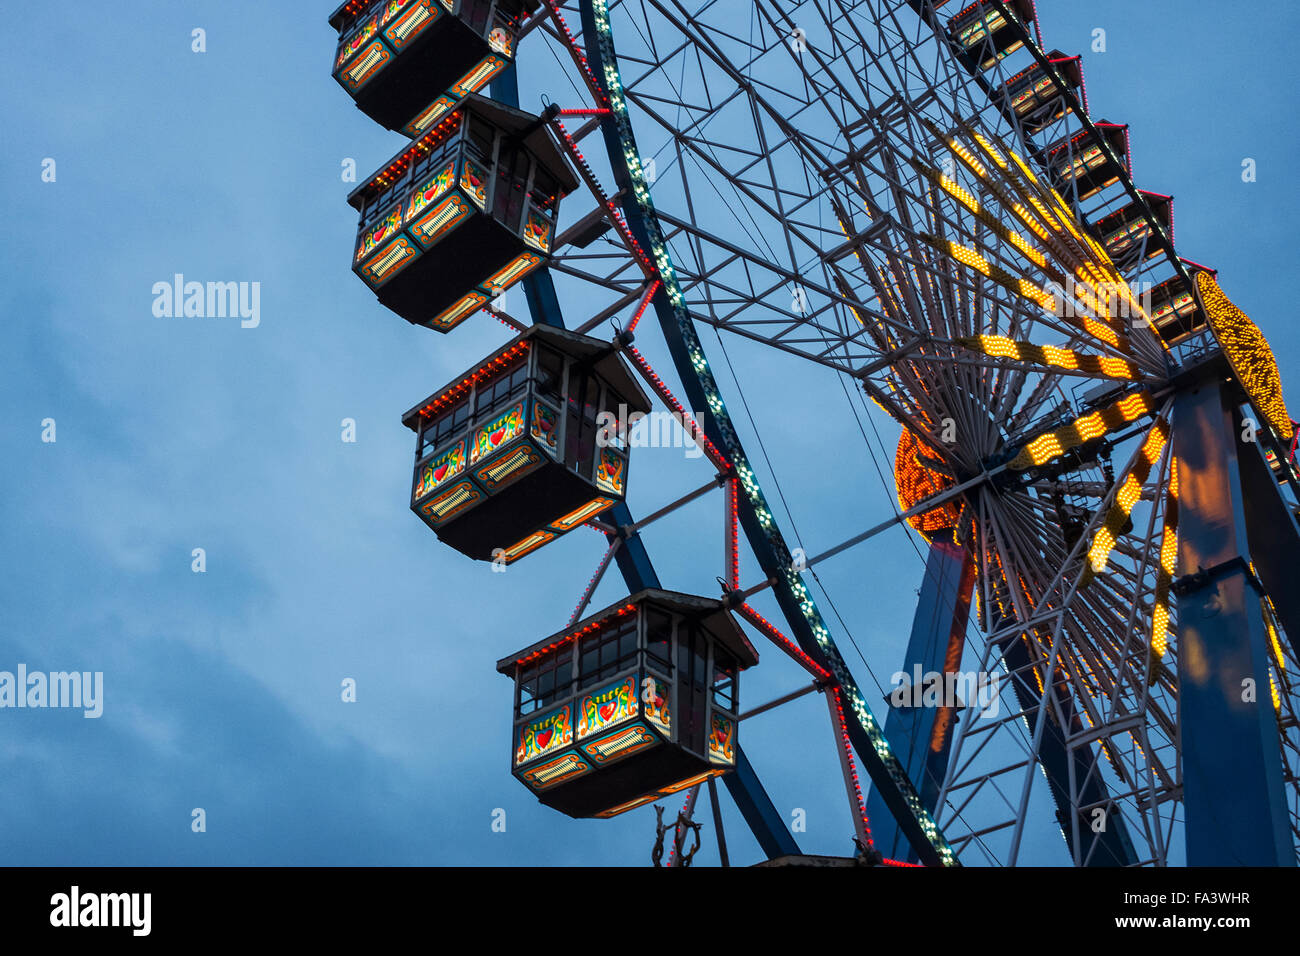 Berlin, Old ferris wheel with painted pods at Weihnachtszeit German Christmas market - Stock Image